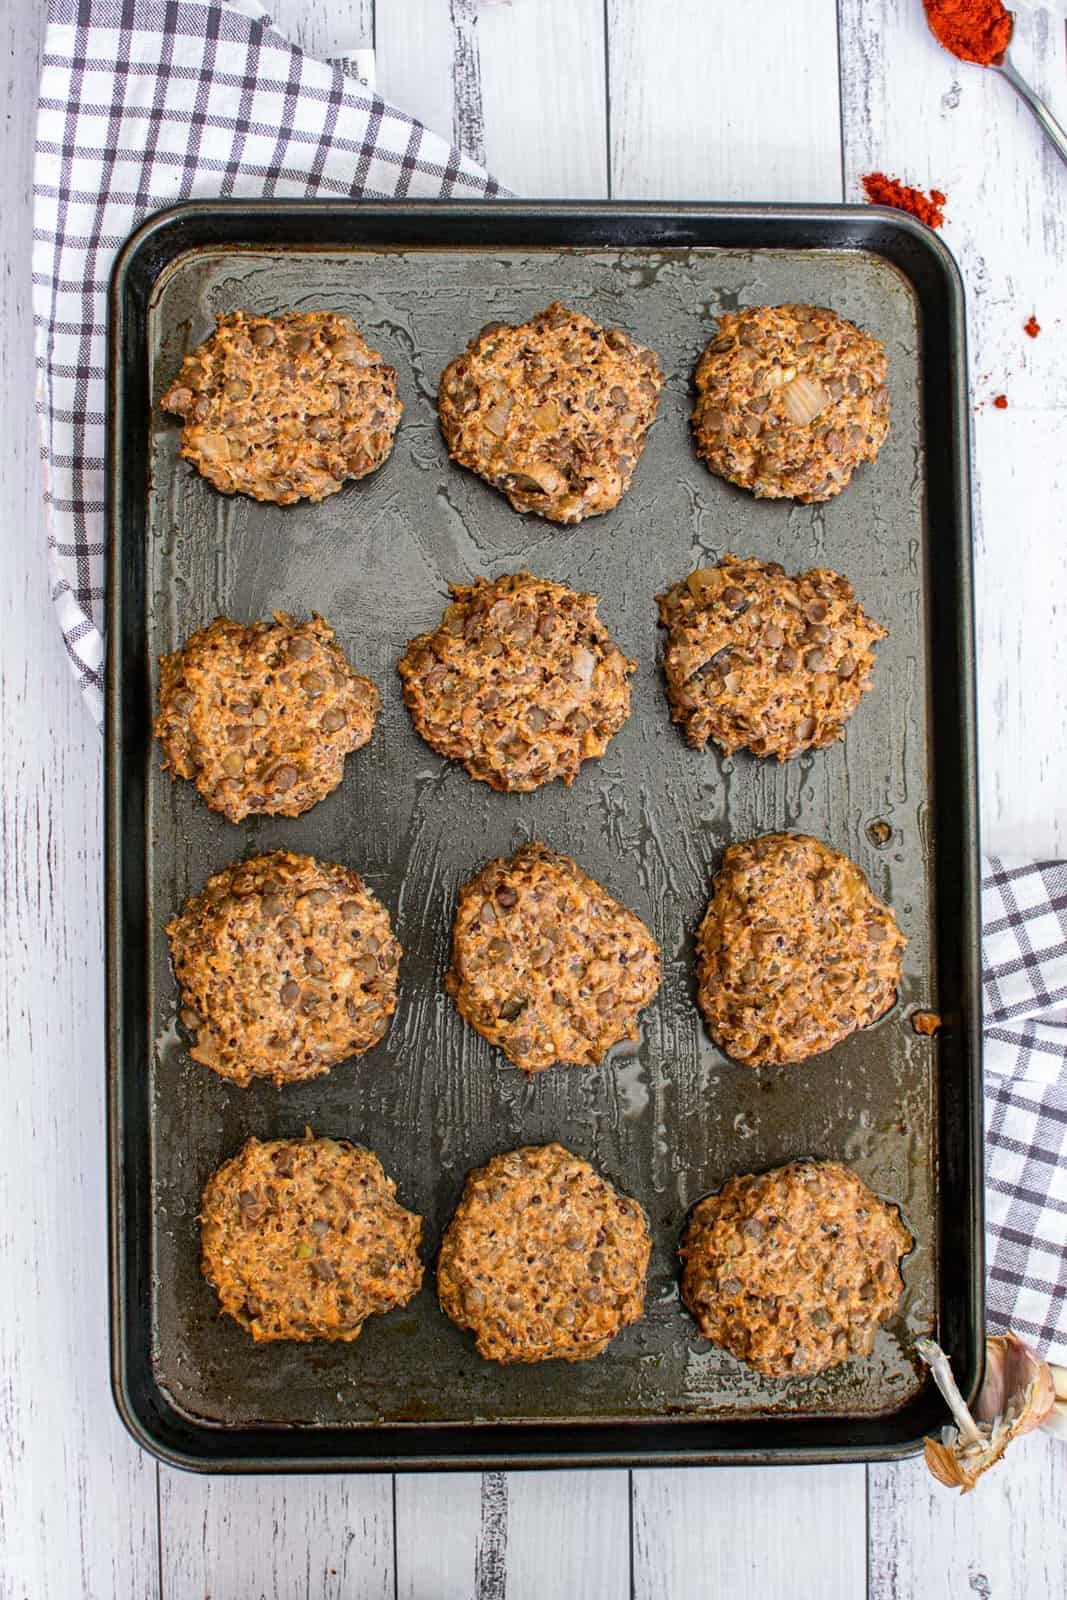 vegan lentil cakes on a baking sheet, ready to be cooked